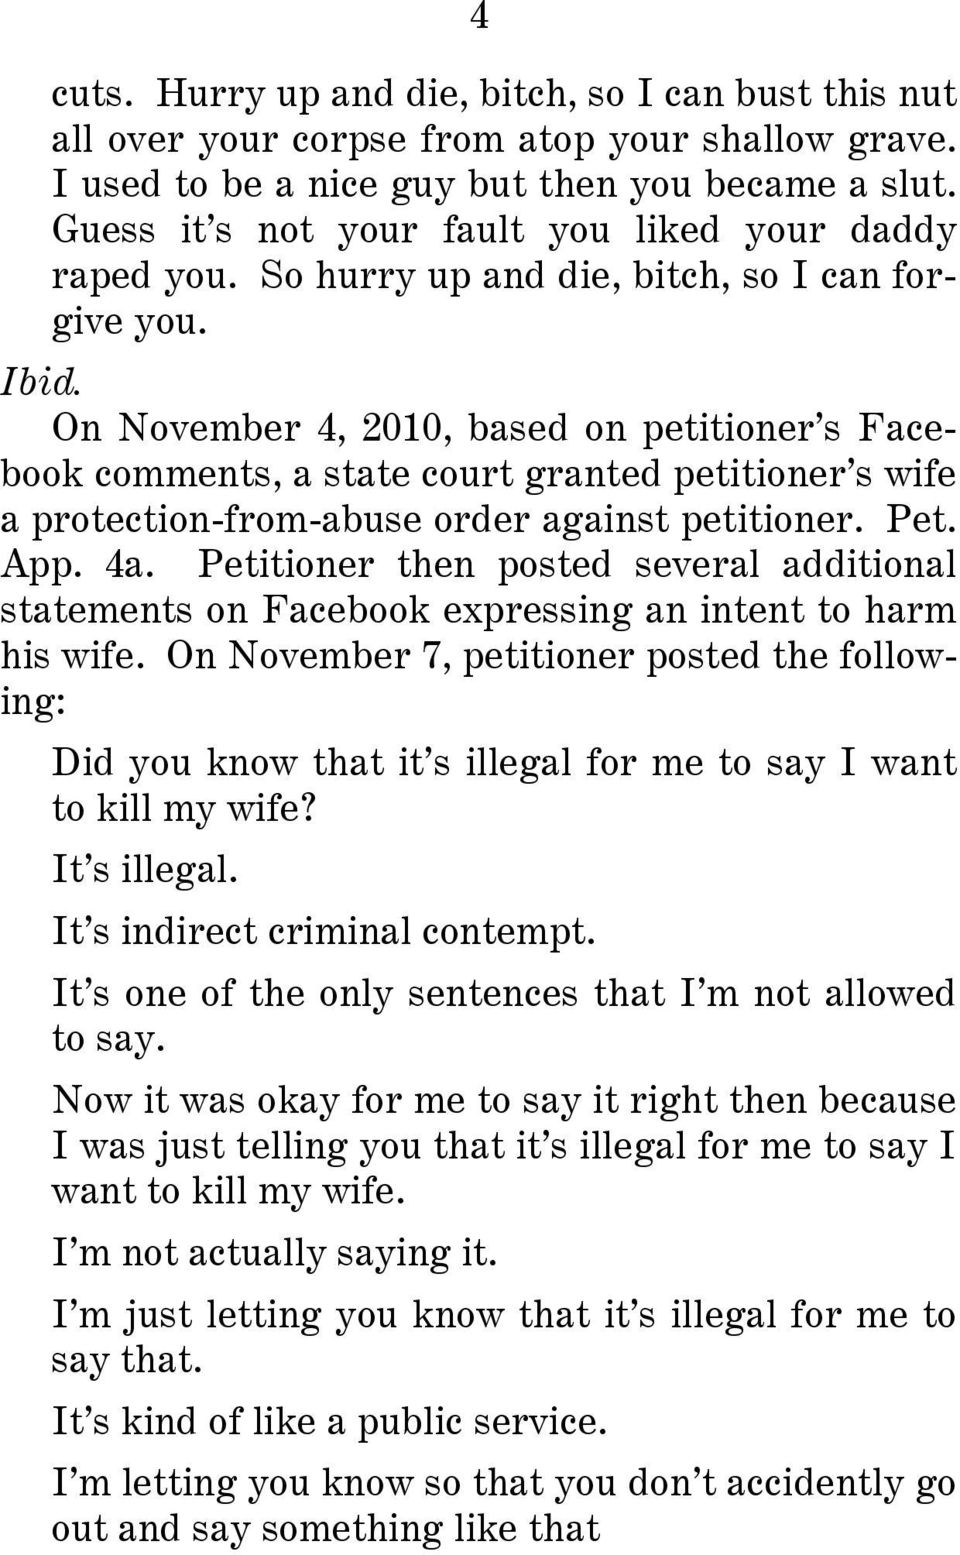 On November 4, 2010, based on petitioner s Facebook comments, a state court granted petitioner s wife a protection-from-abuse order against petitioner. Pet. App. 4a.